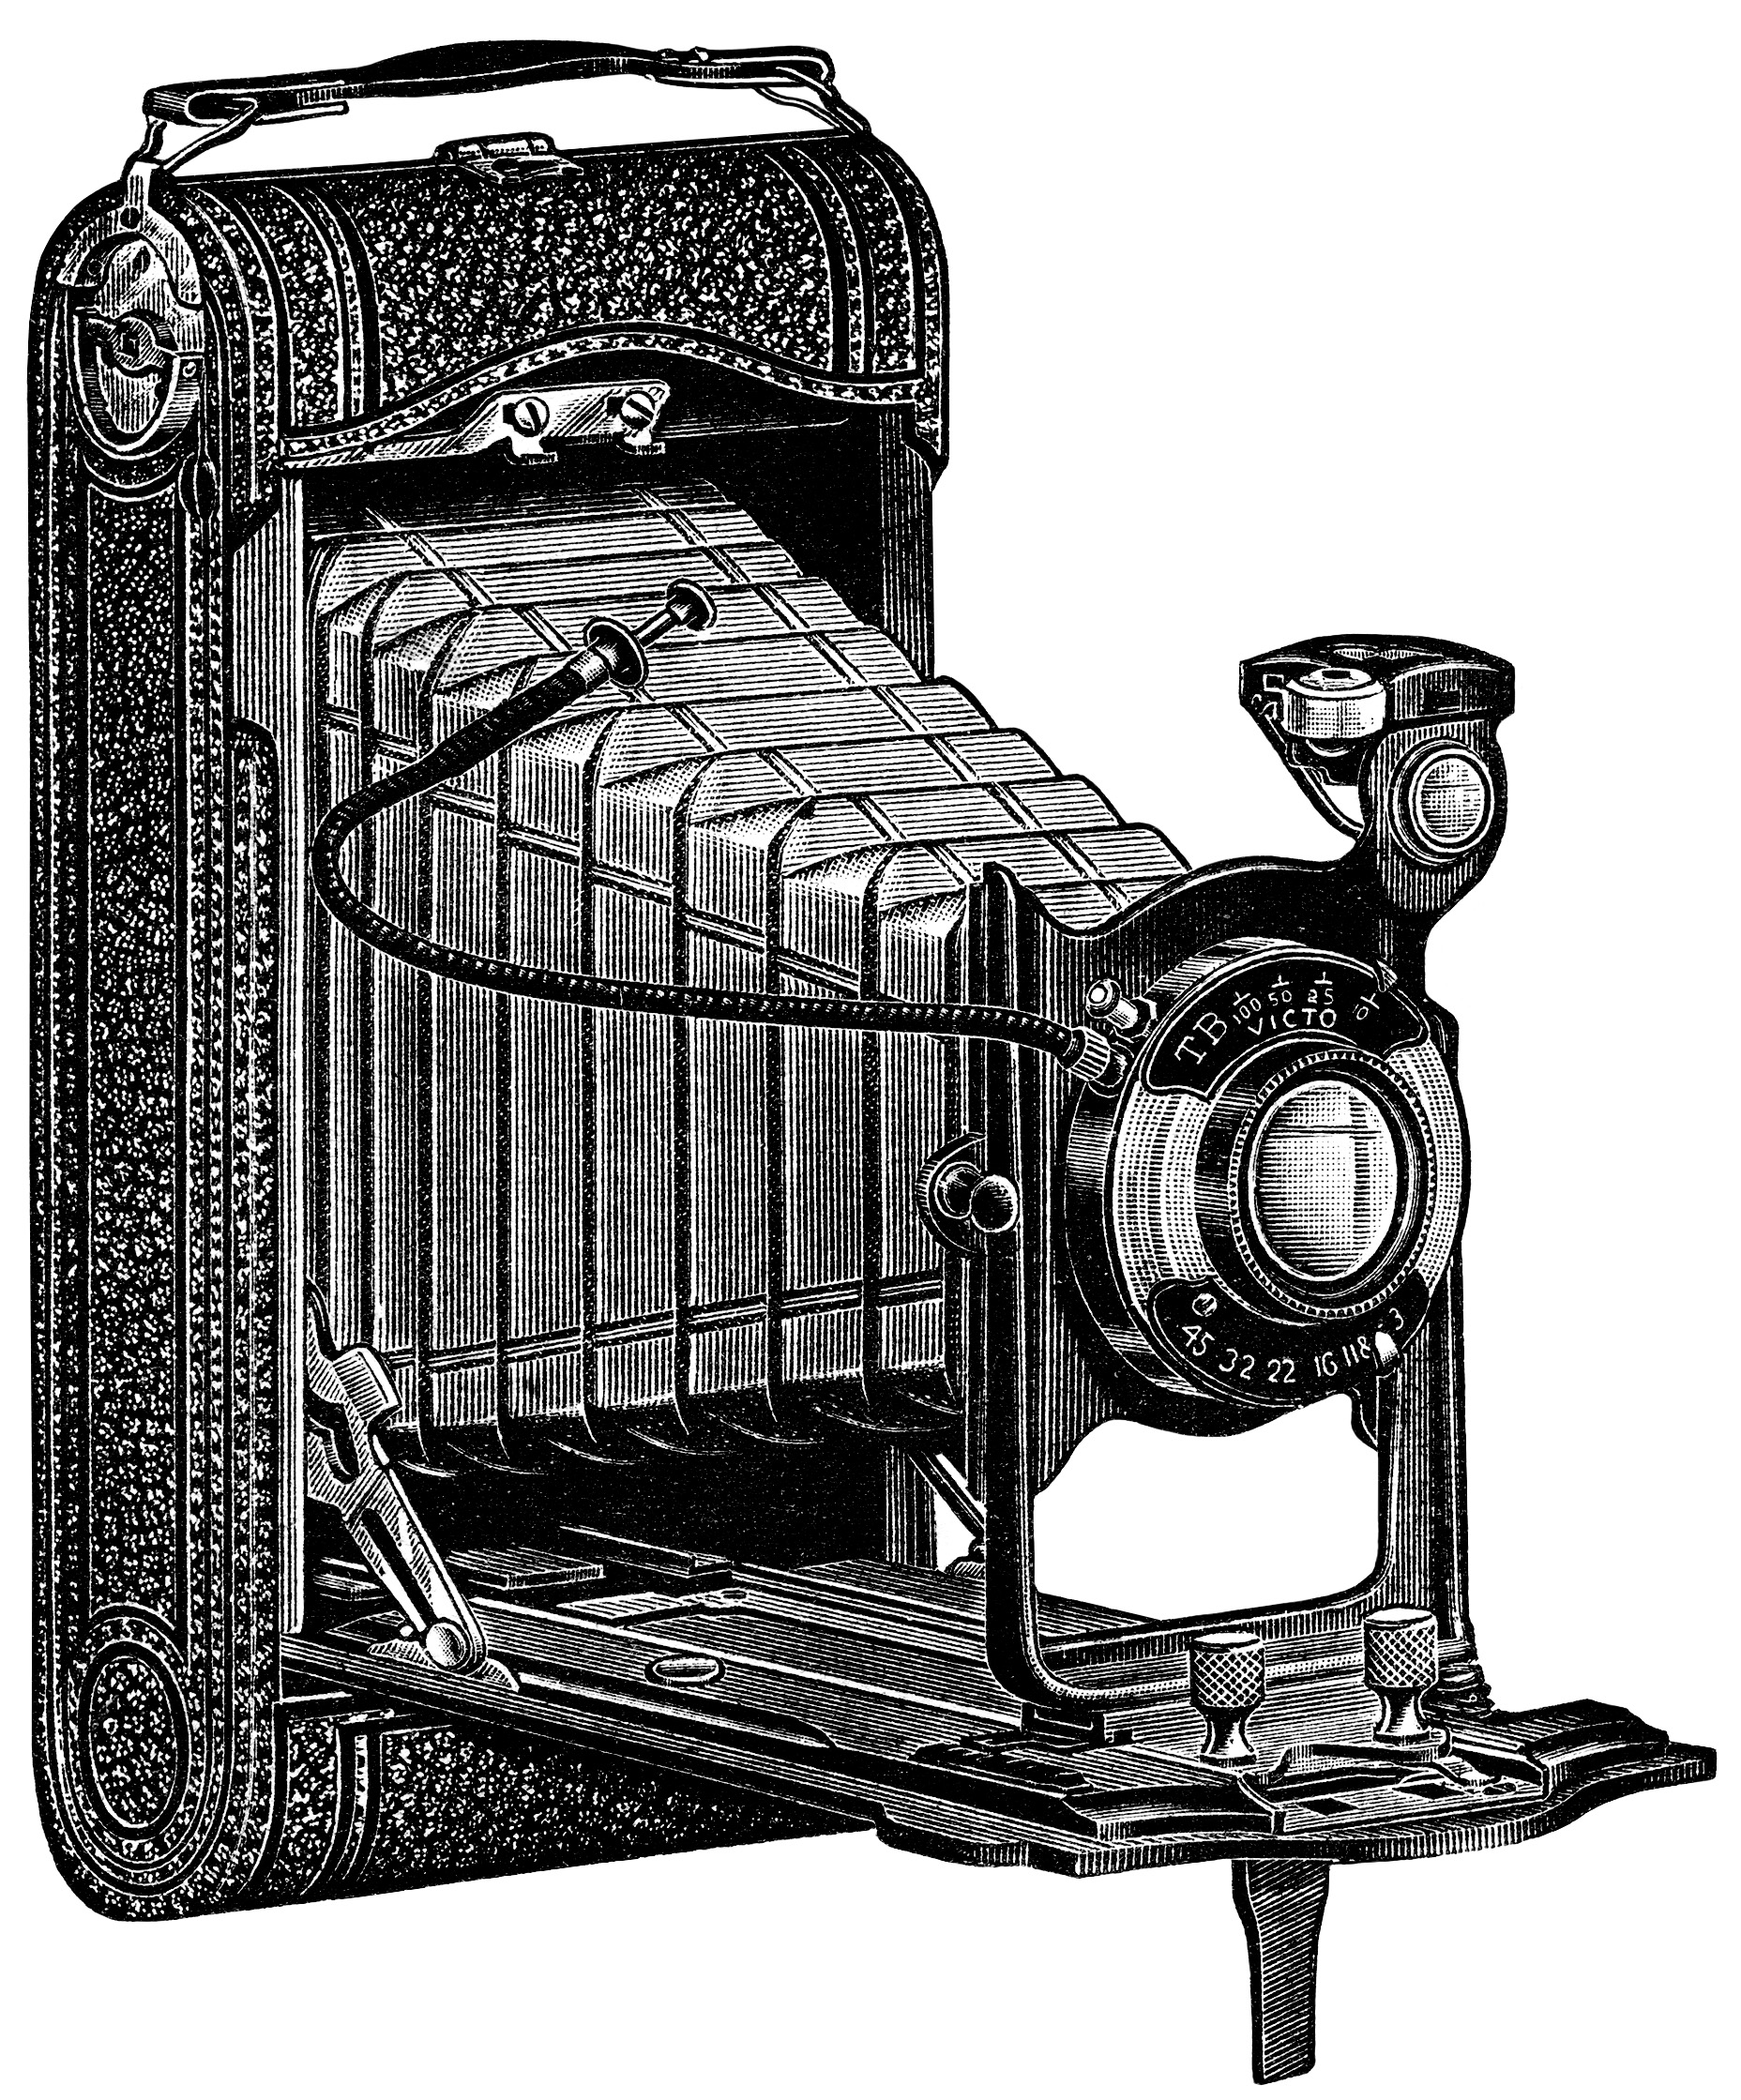 Vintage Camera Clipart Black And White - clipartsgram.com